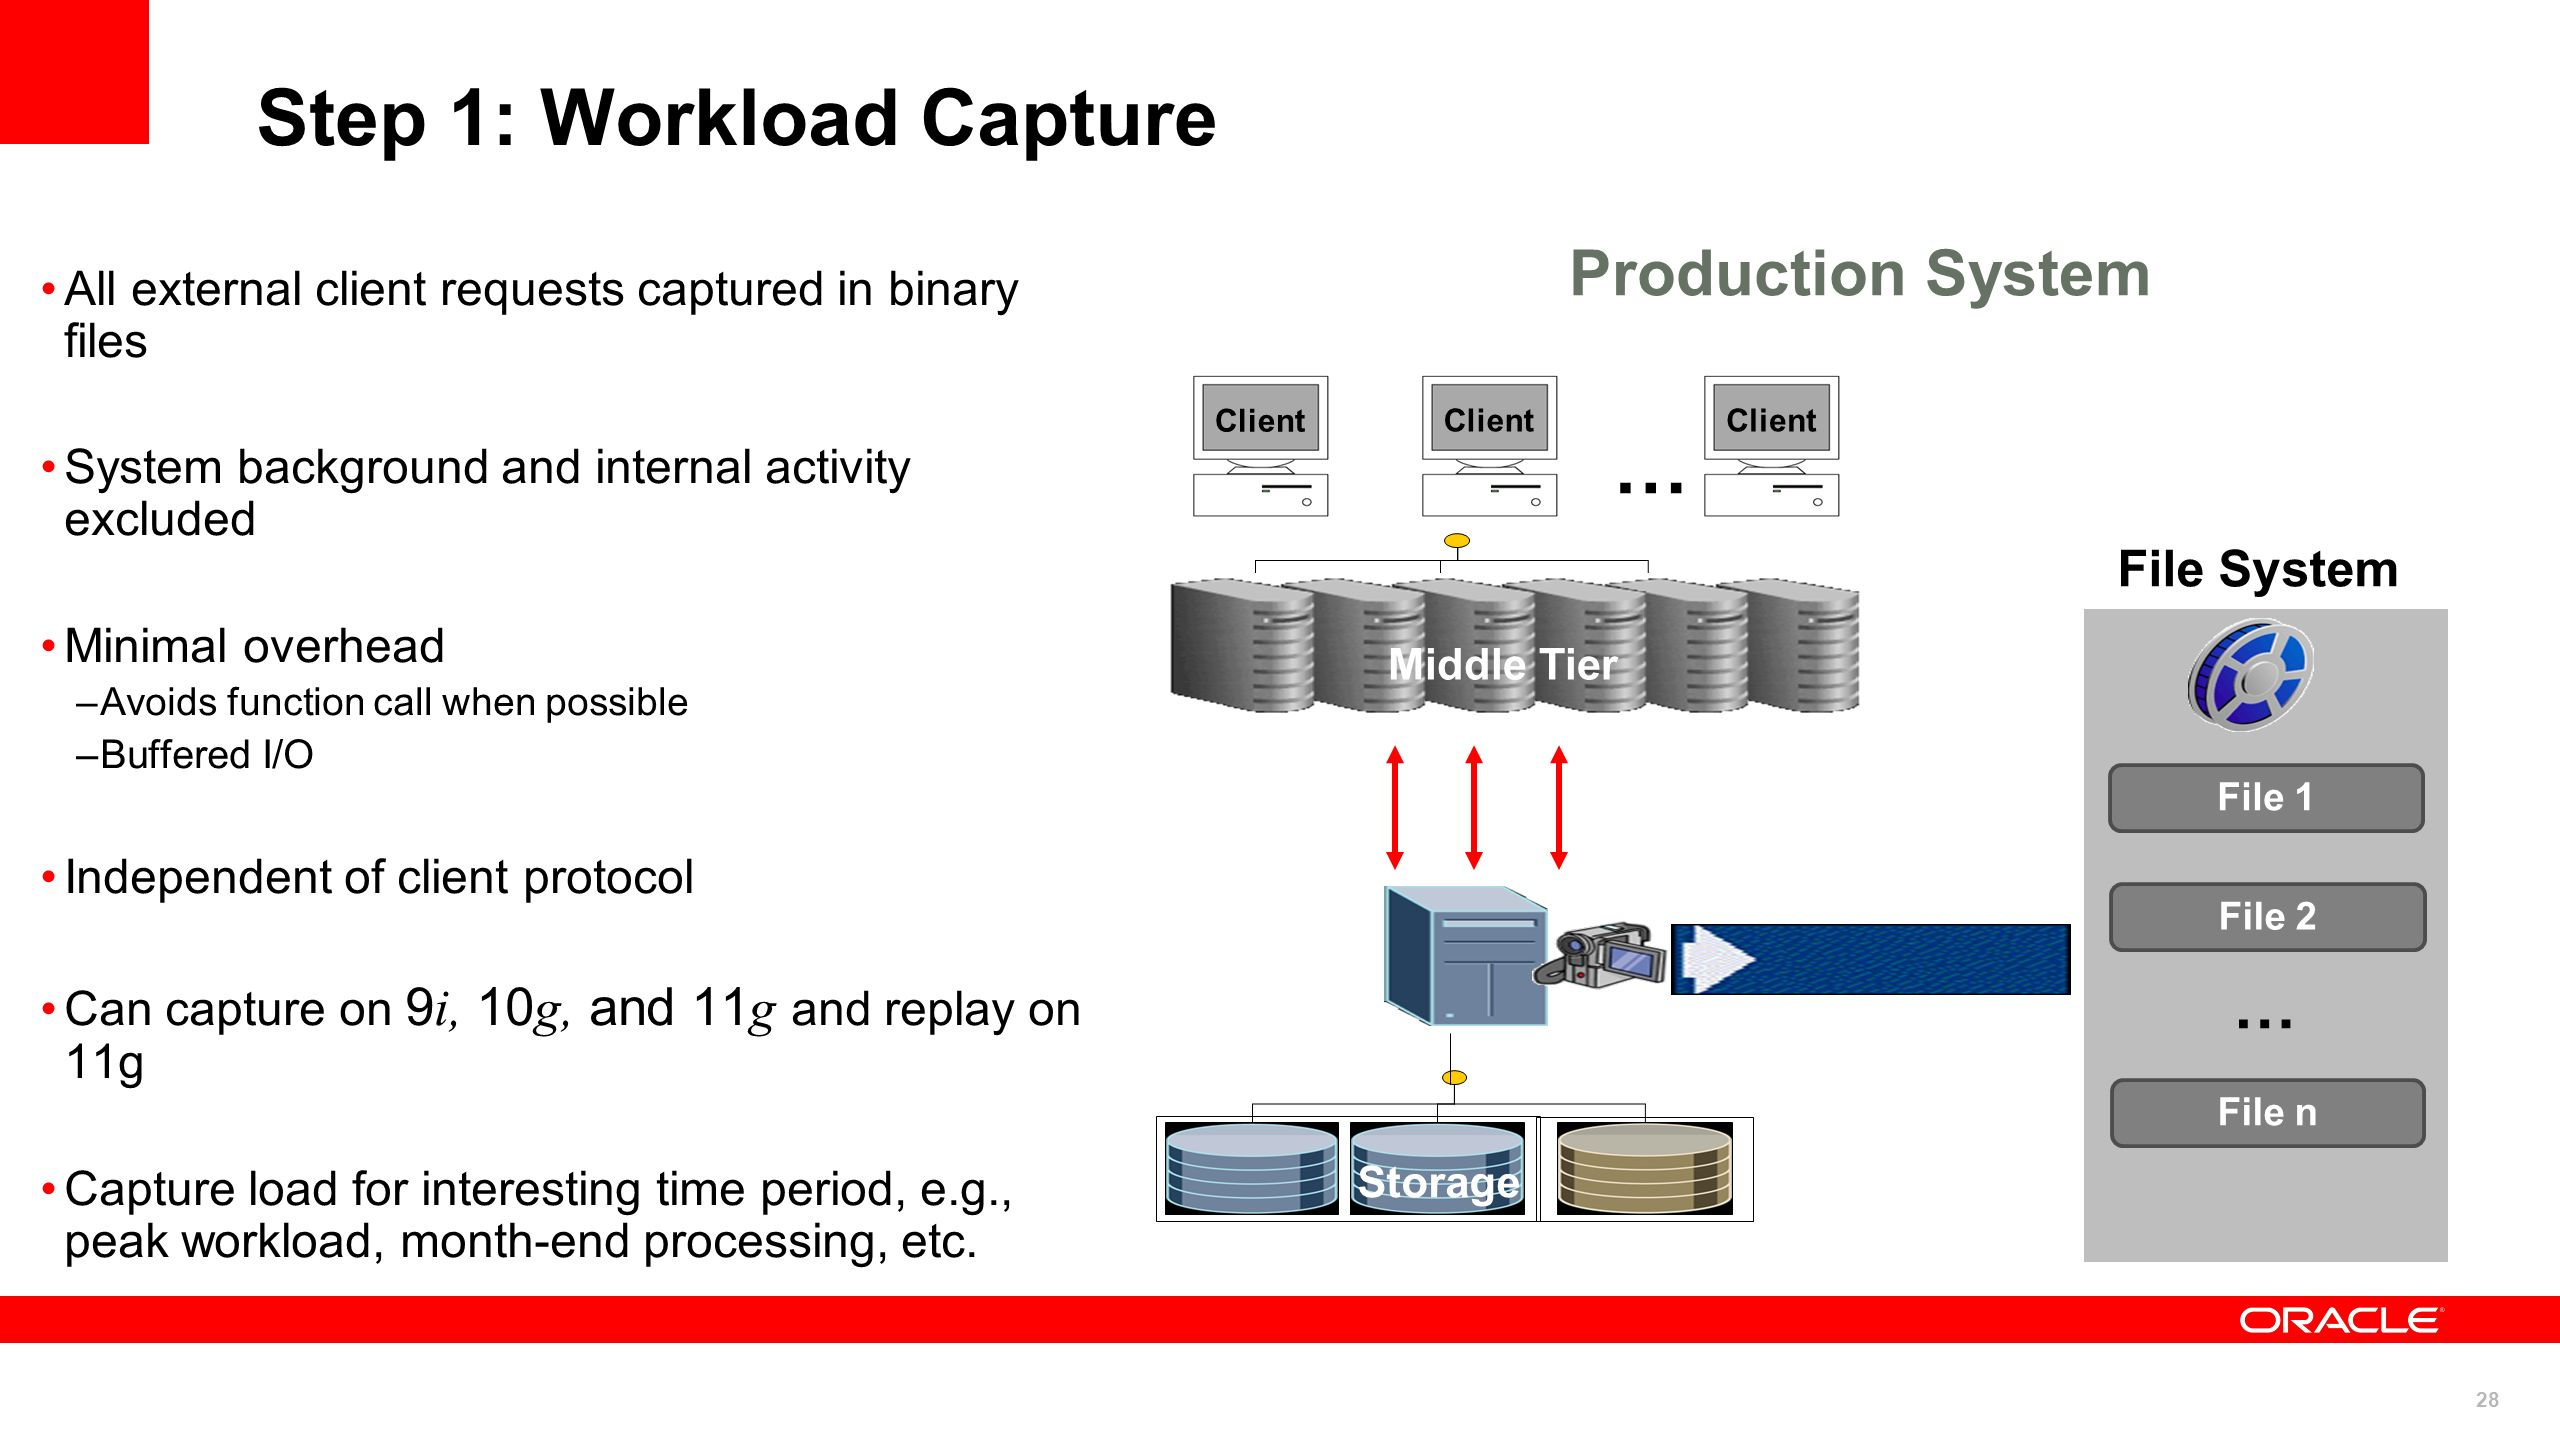 Step 1: Workload Capture